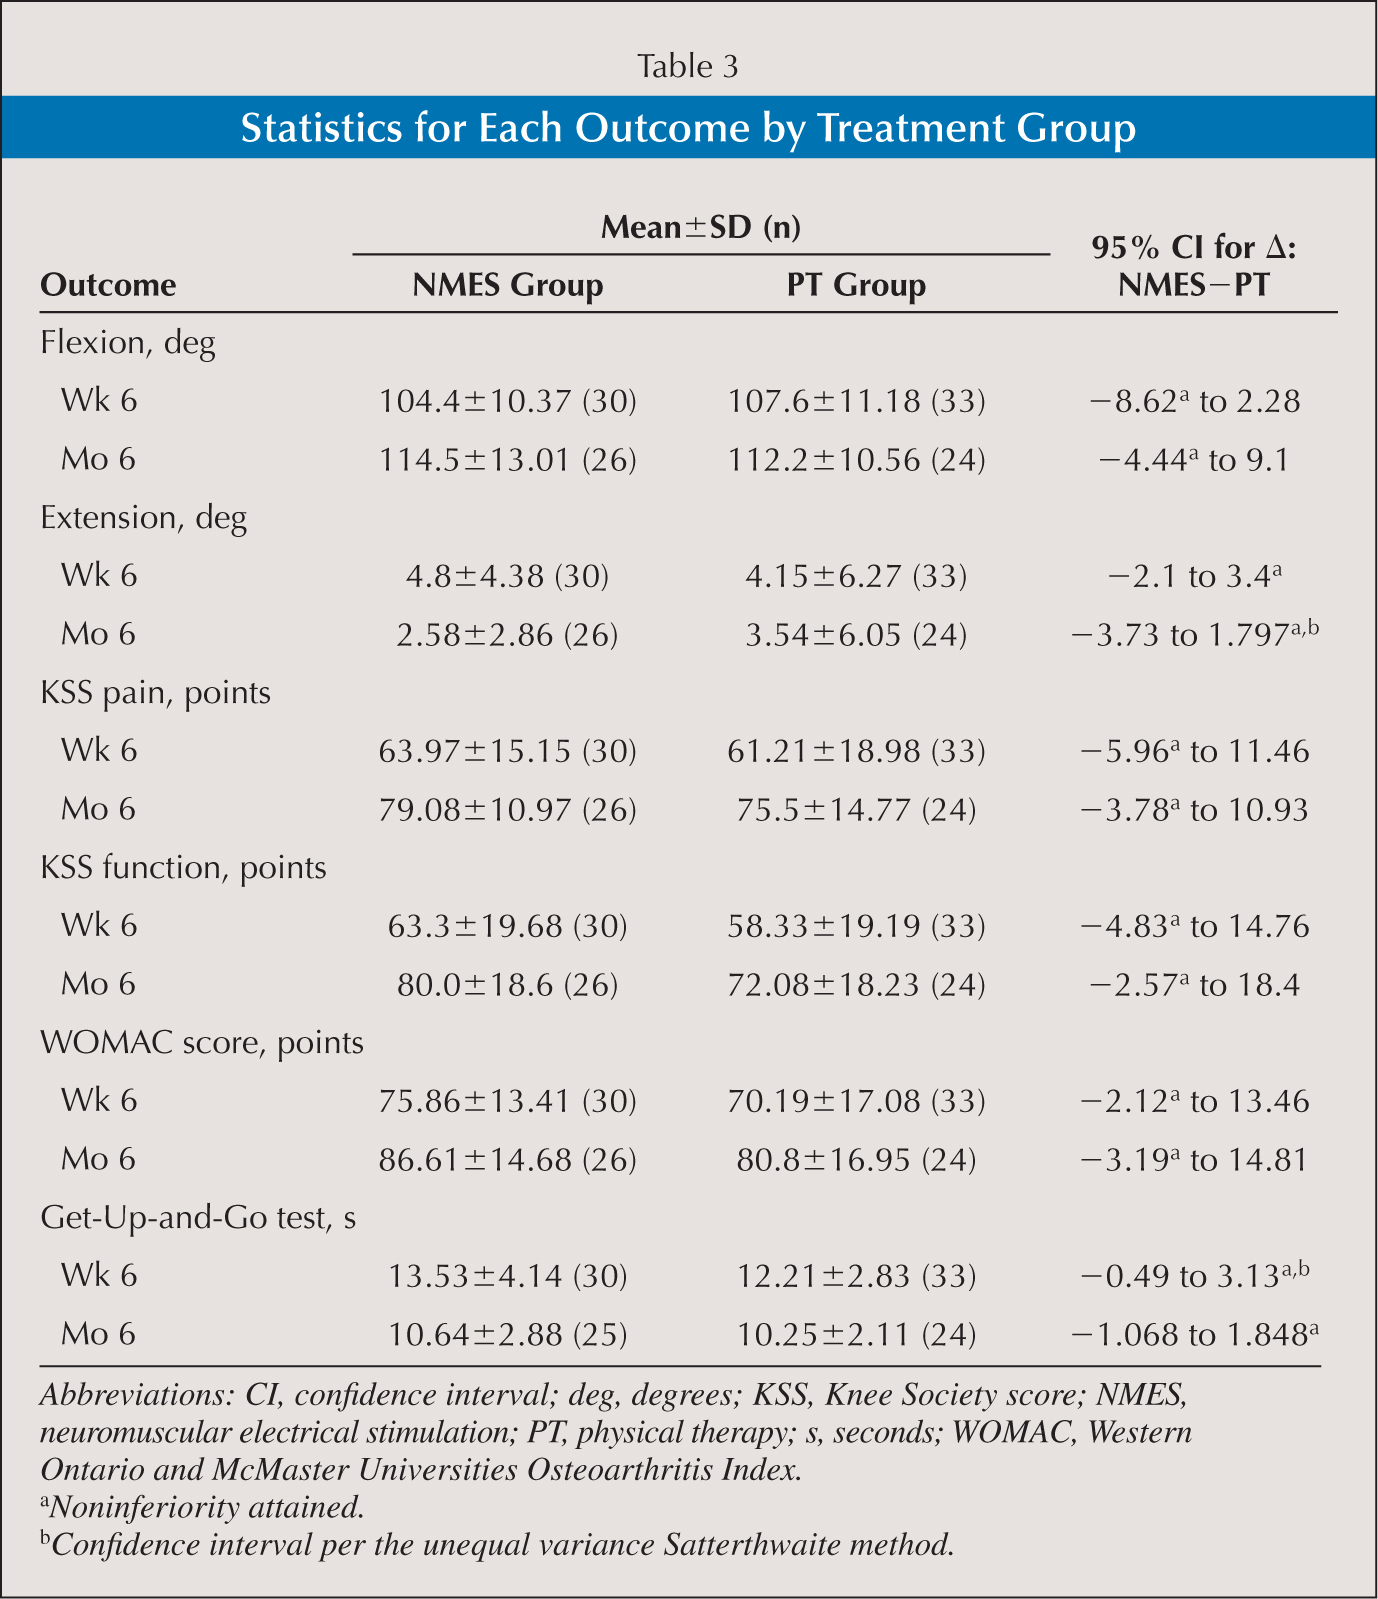 Statistics for Each Outcome by Treatment Group